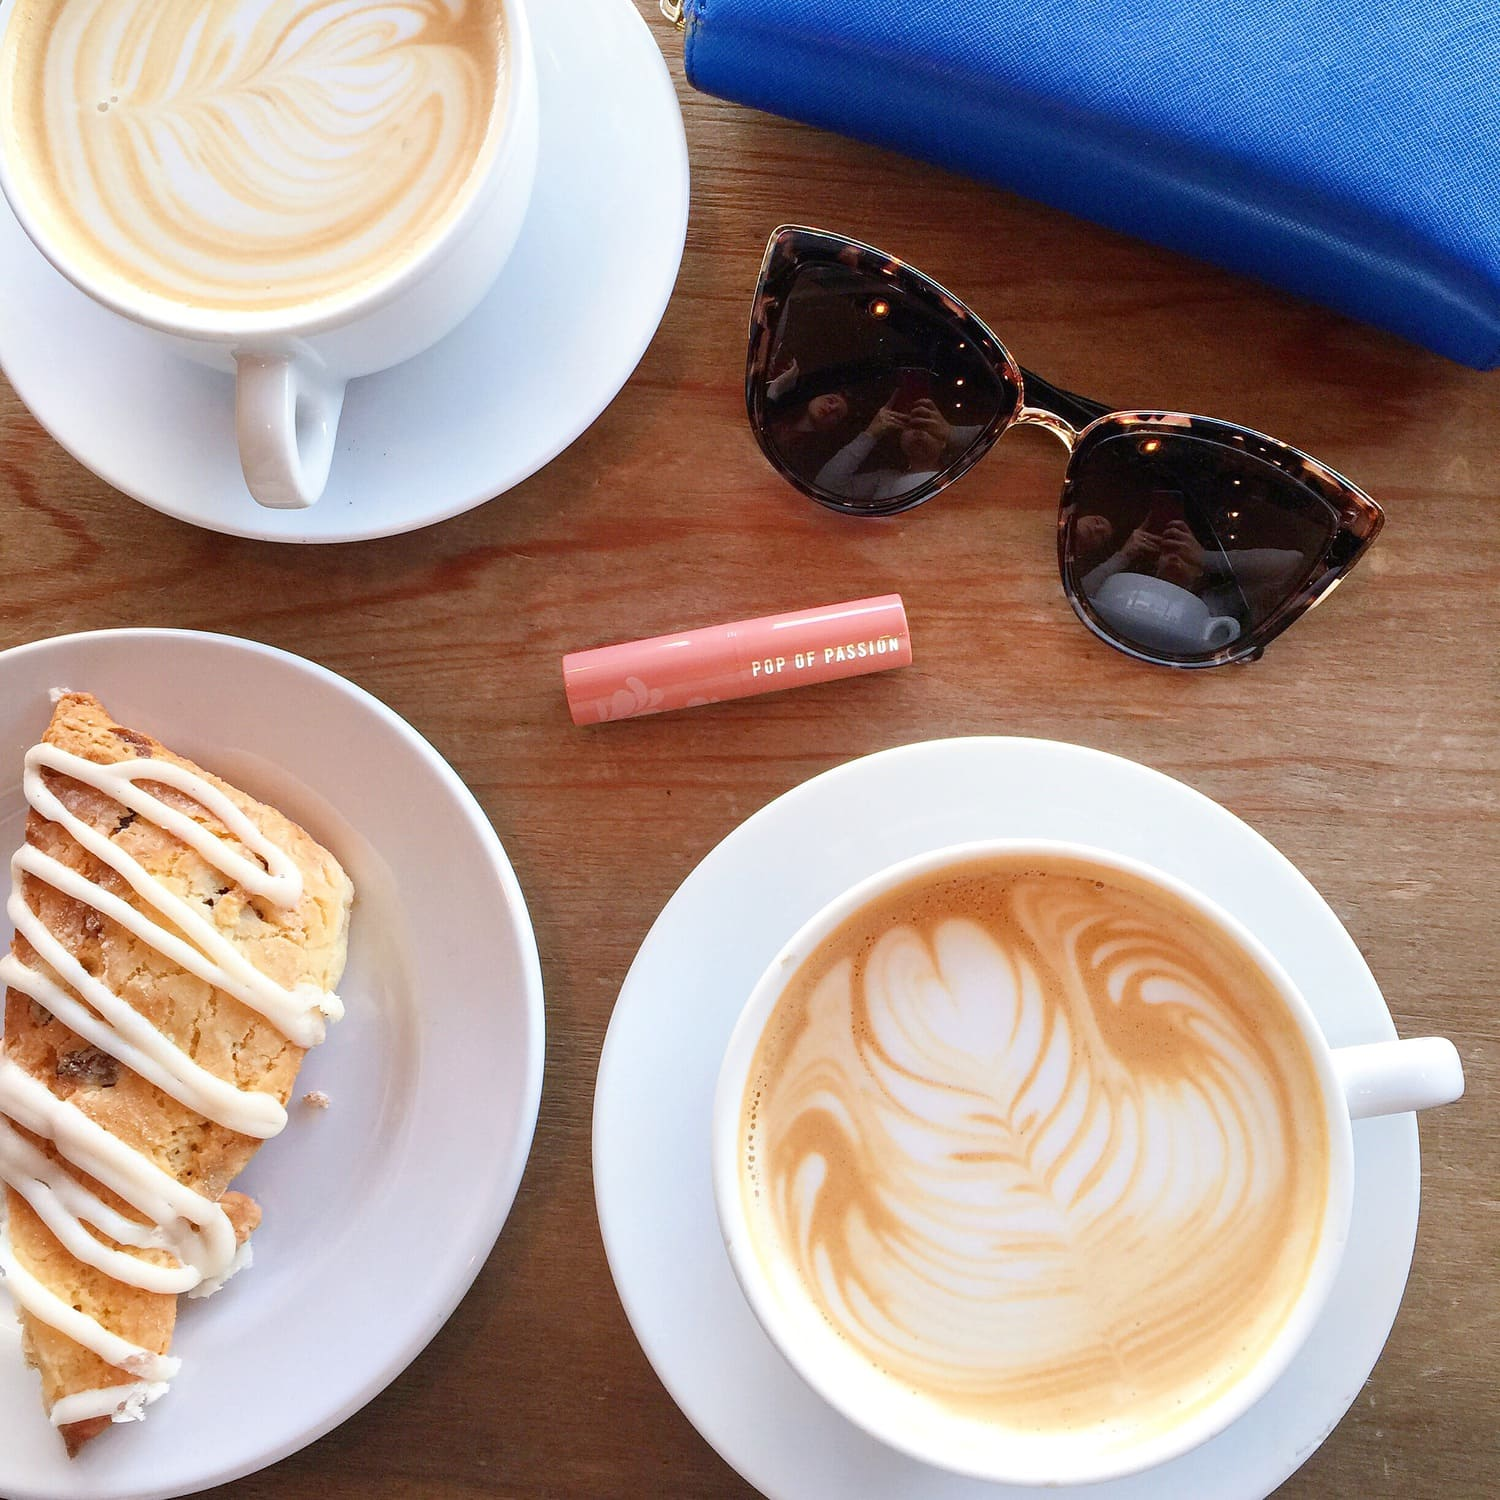 Pretty Latte Art, Frosted Scone, Pink Lip Balm, and Tortoise Shell Cat Eye Sunglasses at Buddy Brew Coffee in Tampa   Tampa Florida Travel Guide   Marry Me on A Megabus Giveaway   Affordable Travel Options   Florida Travel Blogger Ashley Brooke Nicholas  